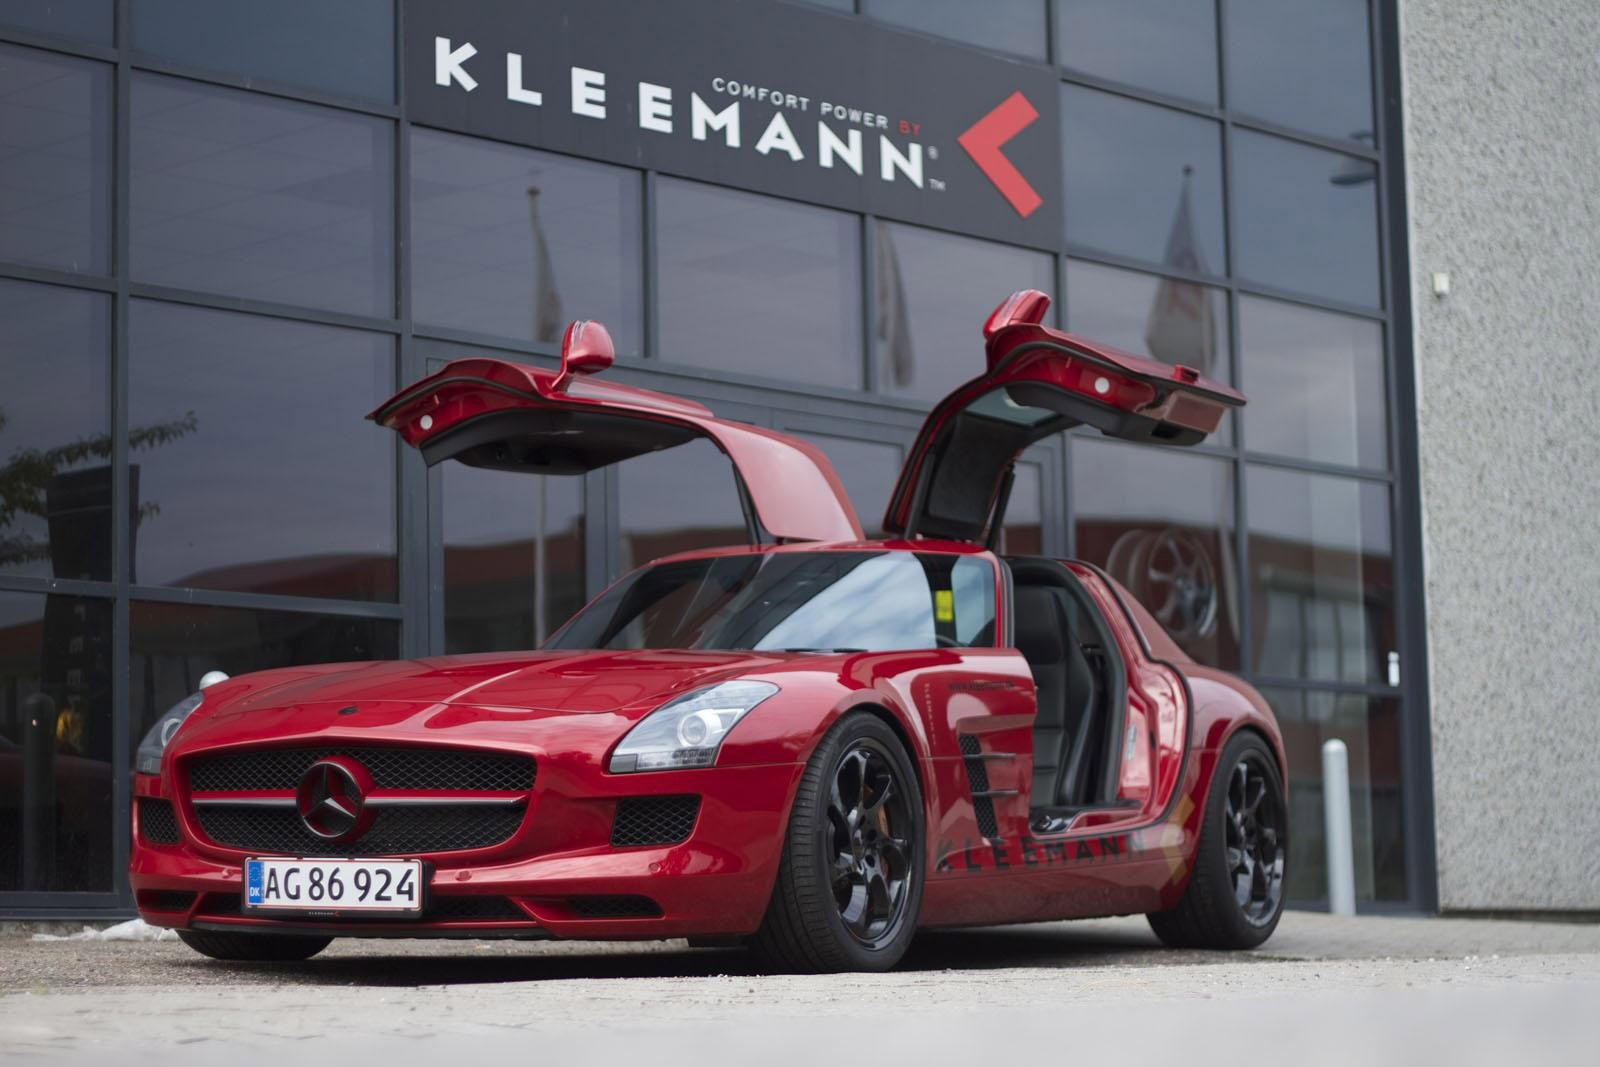 New Kleemann Mercedes Sls Amg Top Speed 356 Km H On This Month